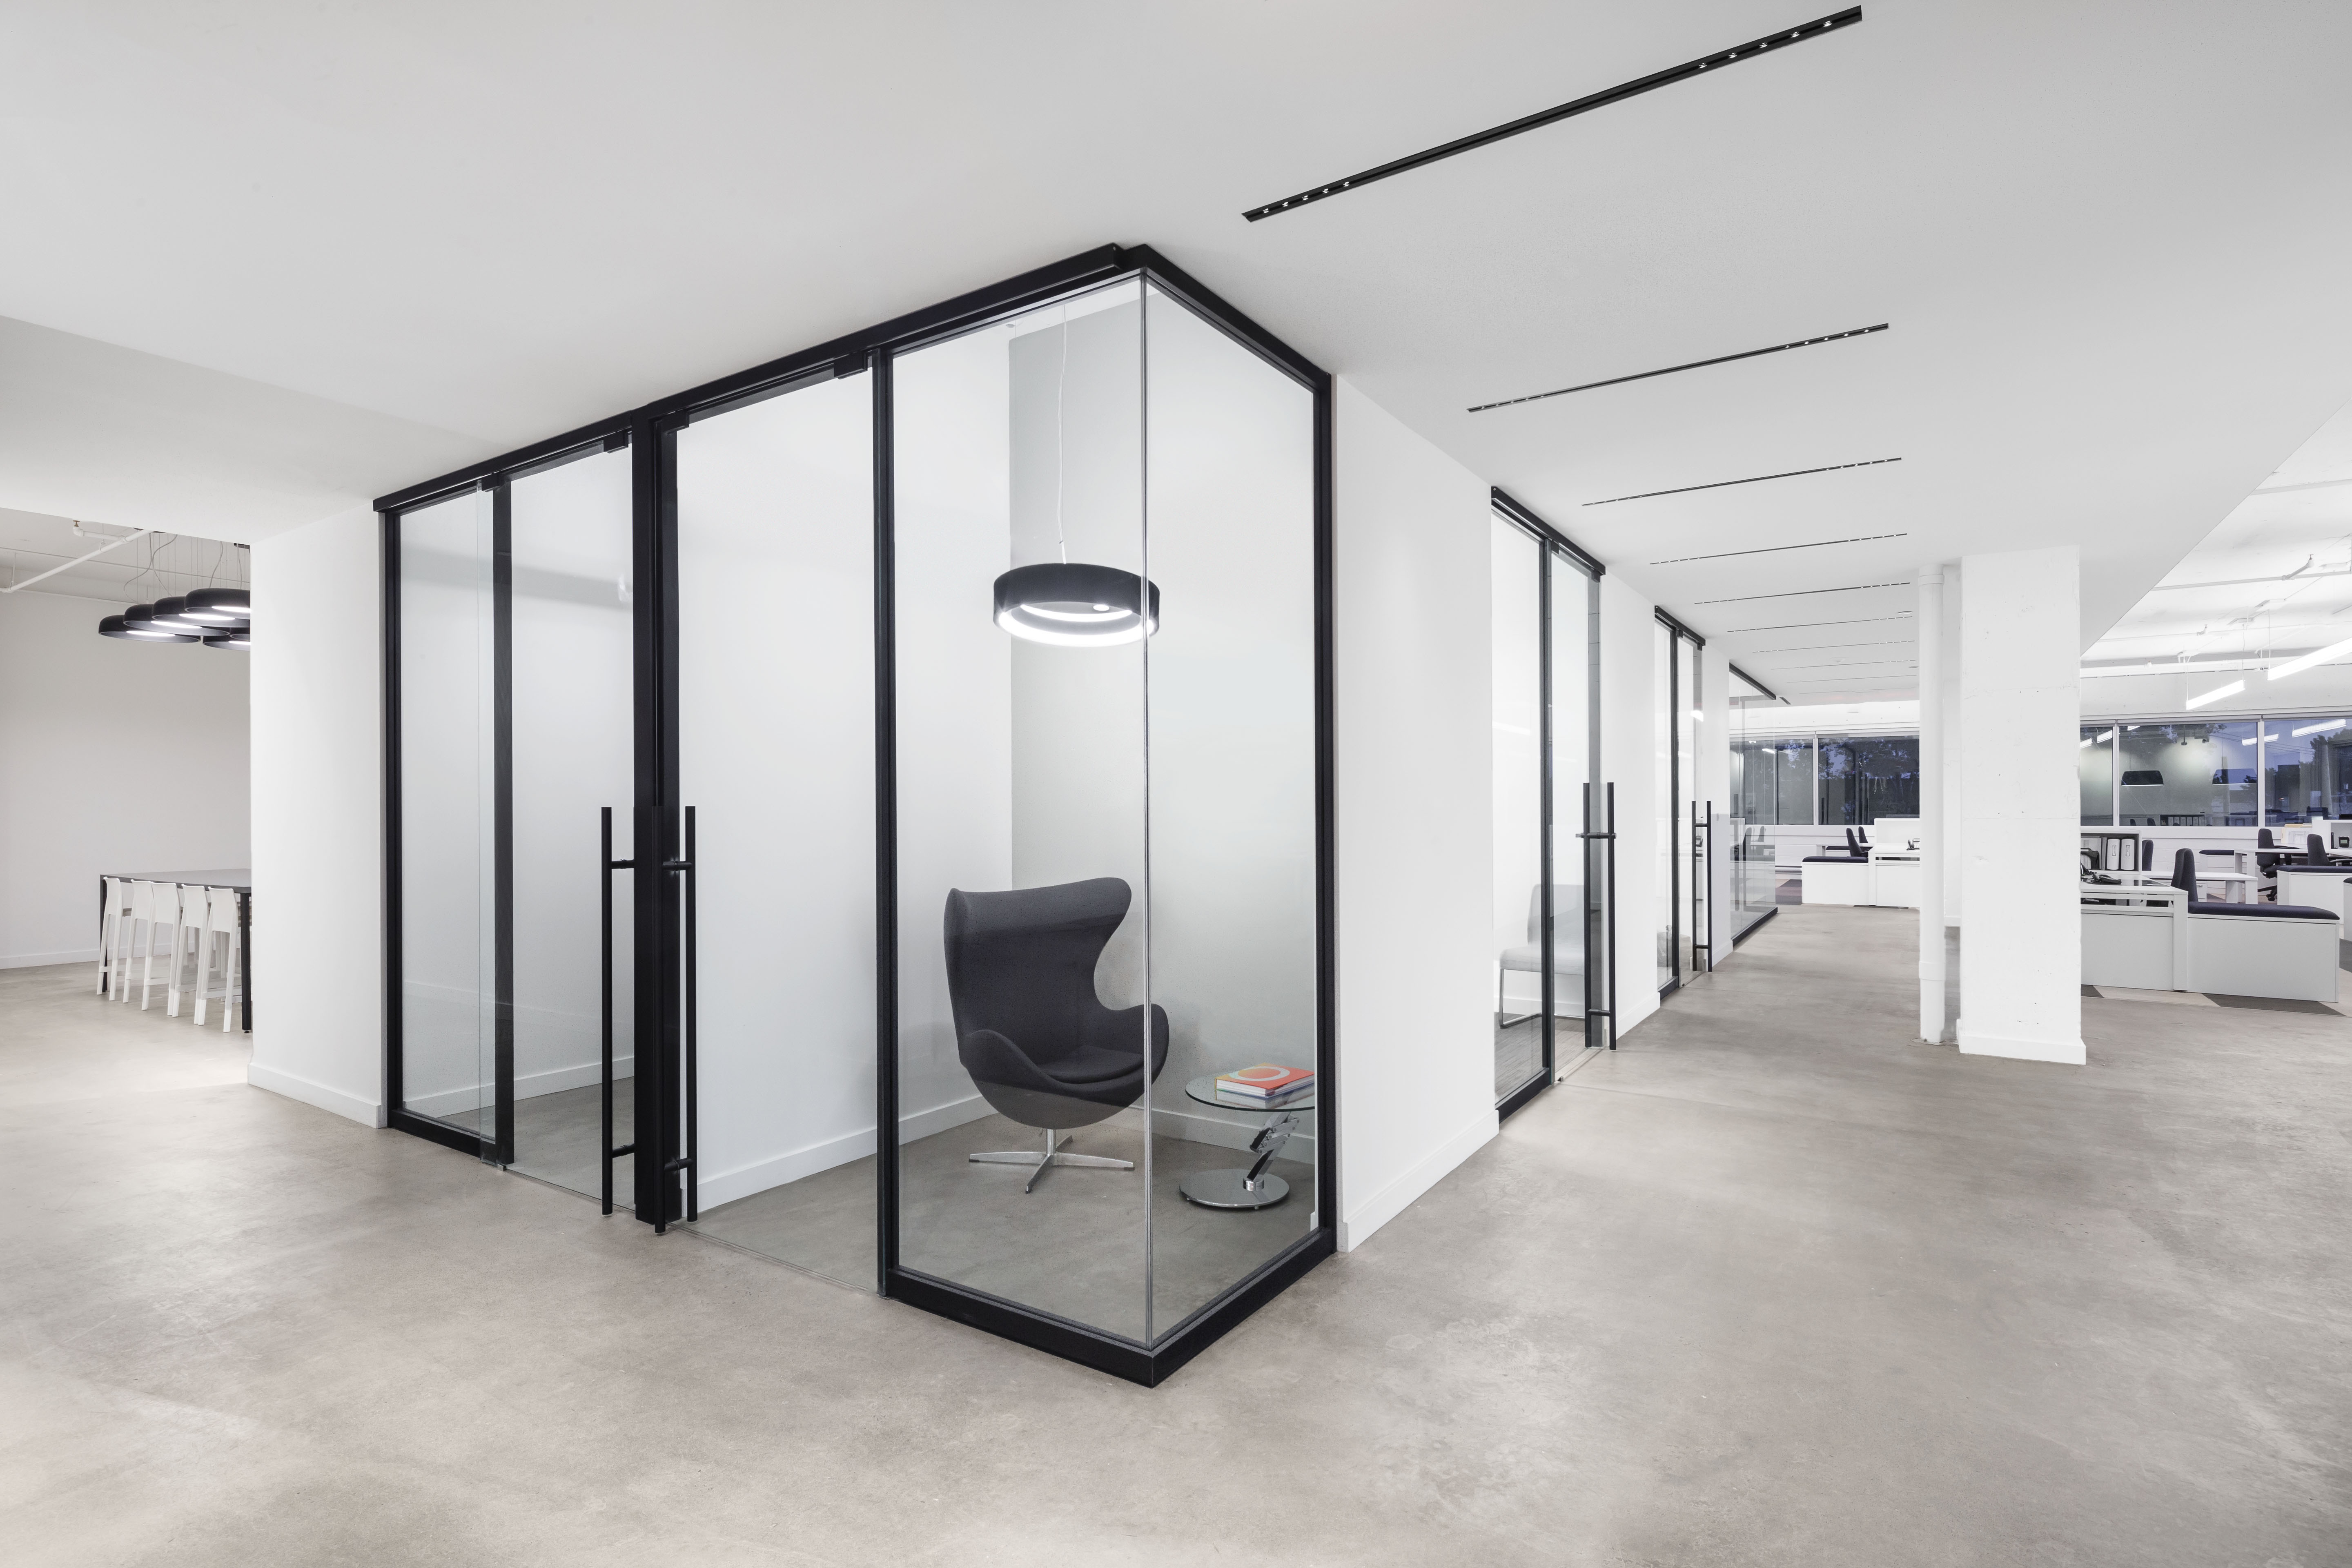 An office layout with breakout rooms created with demountable interior glass walls